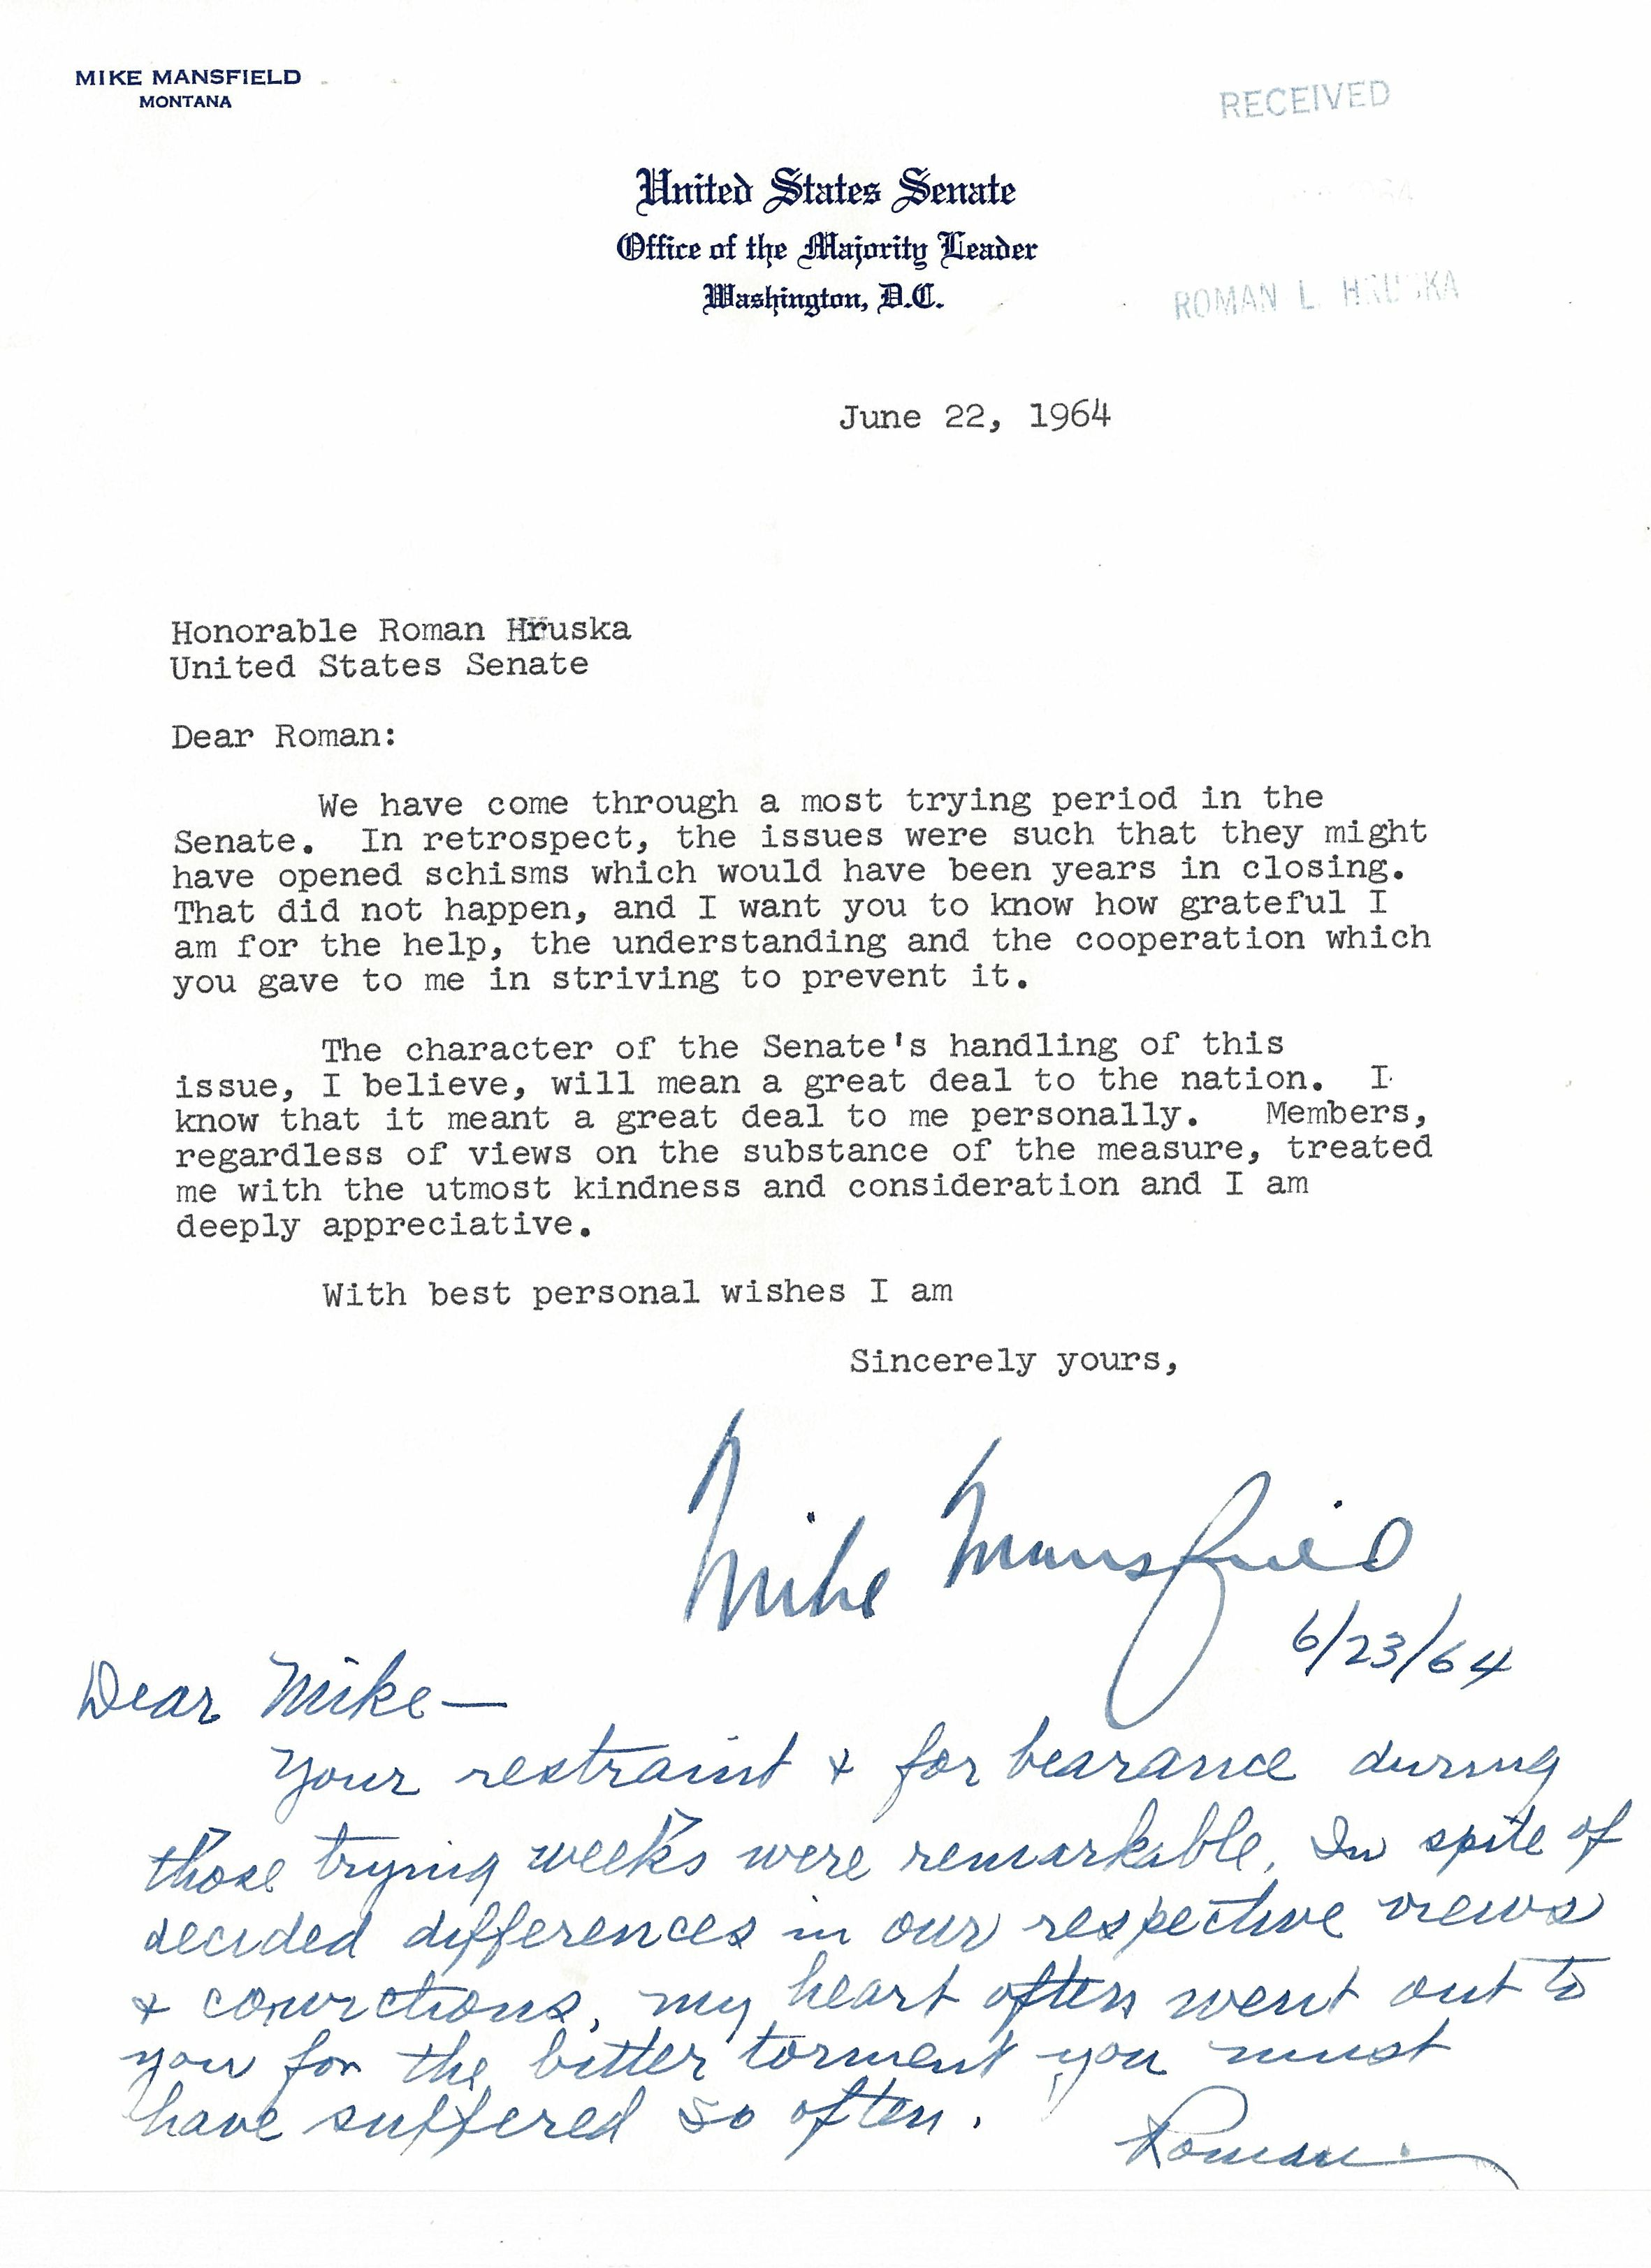 civil rights exhibits lib umt edu letter to r hruska from mike mansfield 22 1964